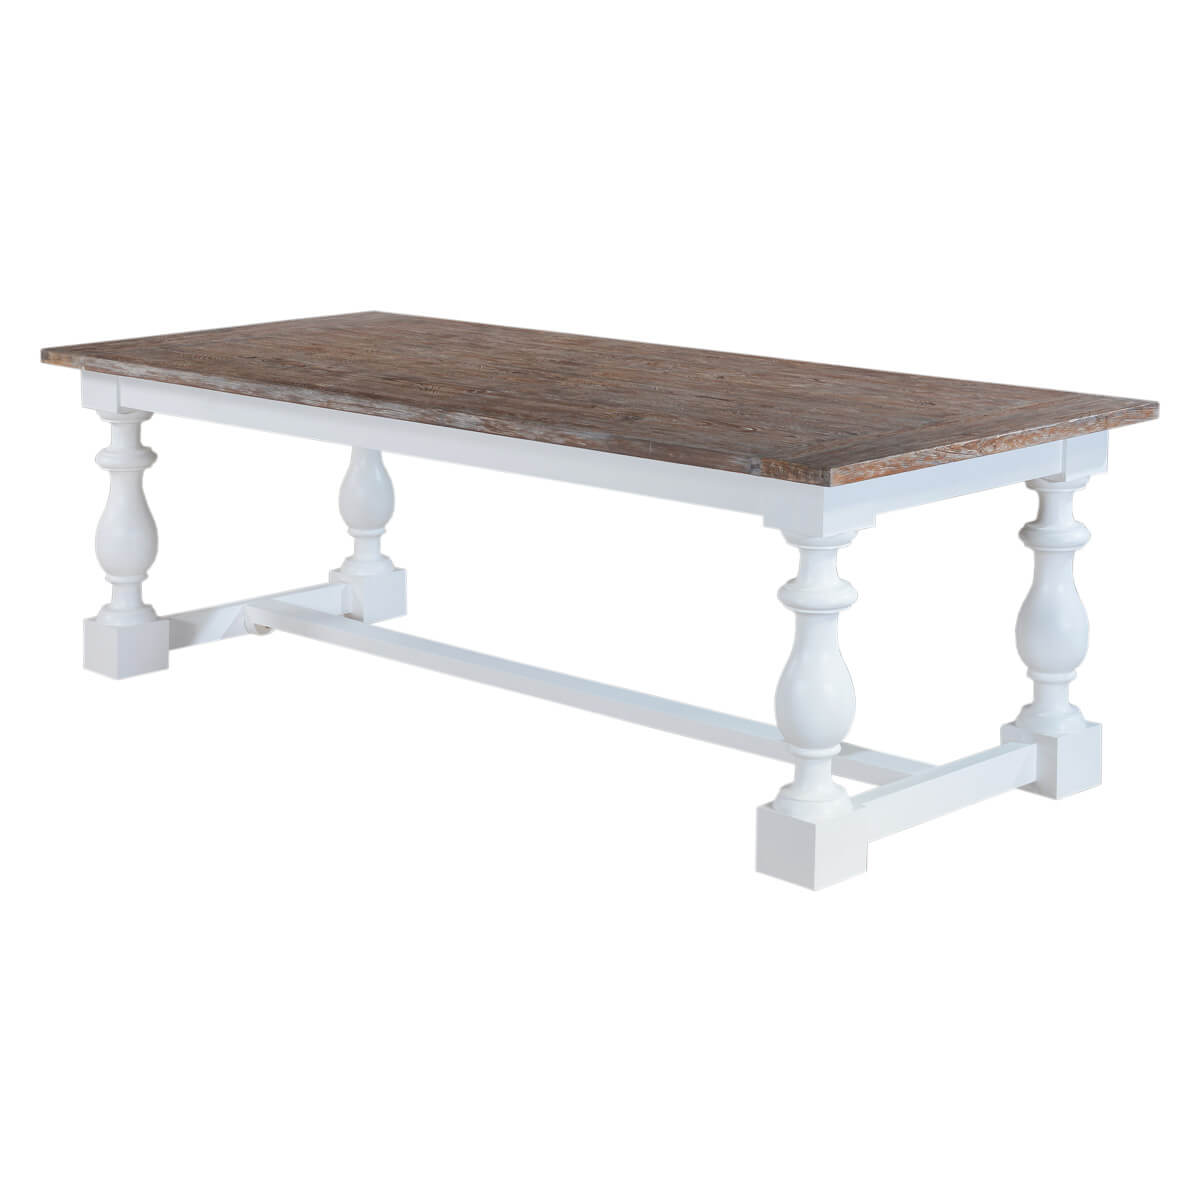 Danville Modern Teak and Solid Wood Trestle Base Dining Table